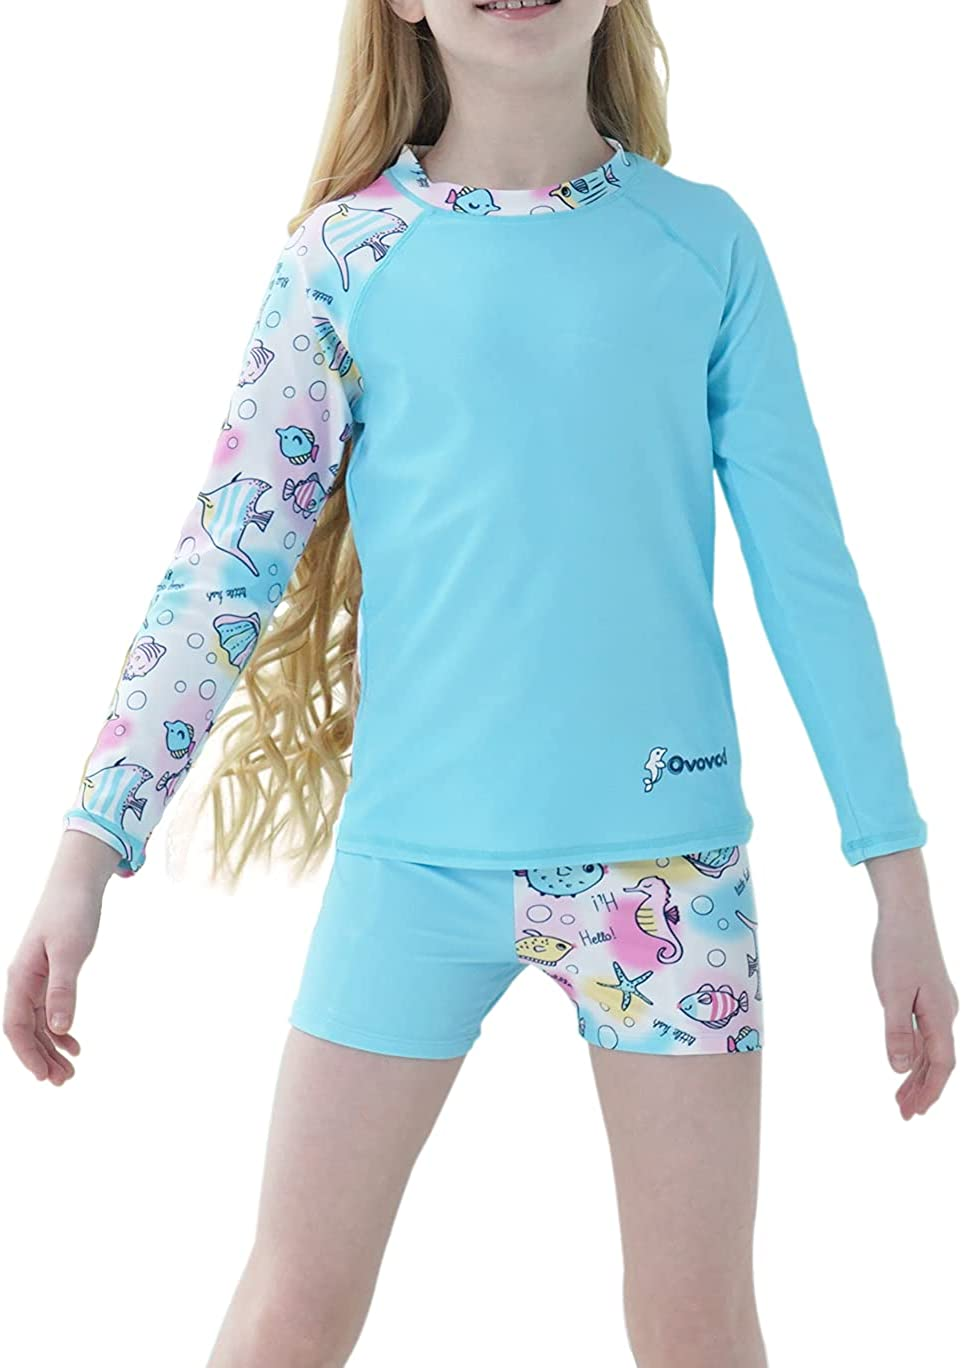 Be super Free shipping on posting reviews welcome Ovovod Girls Swimsuit Two Piece Rash Years for Set Guard UP 4-14